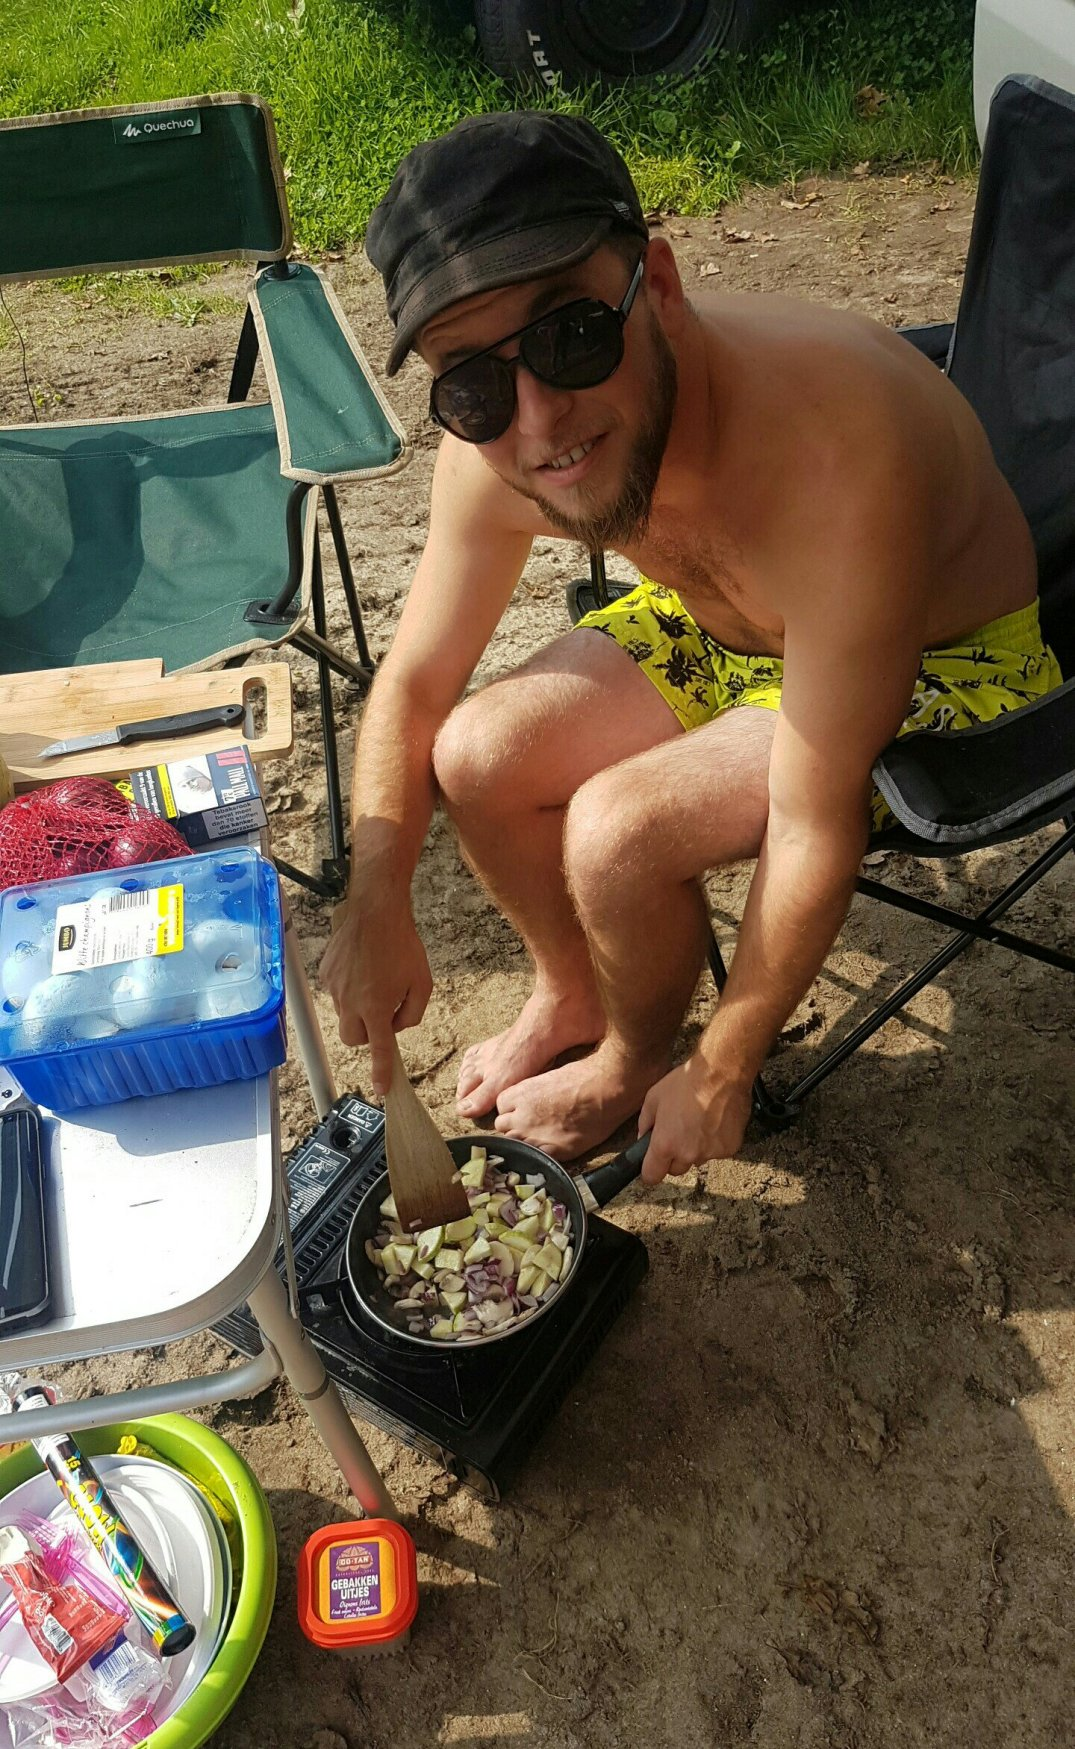 Making breakfast at the camping